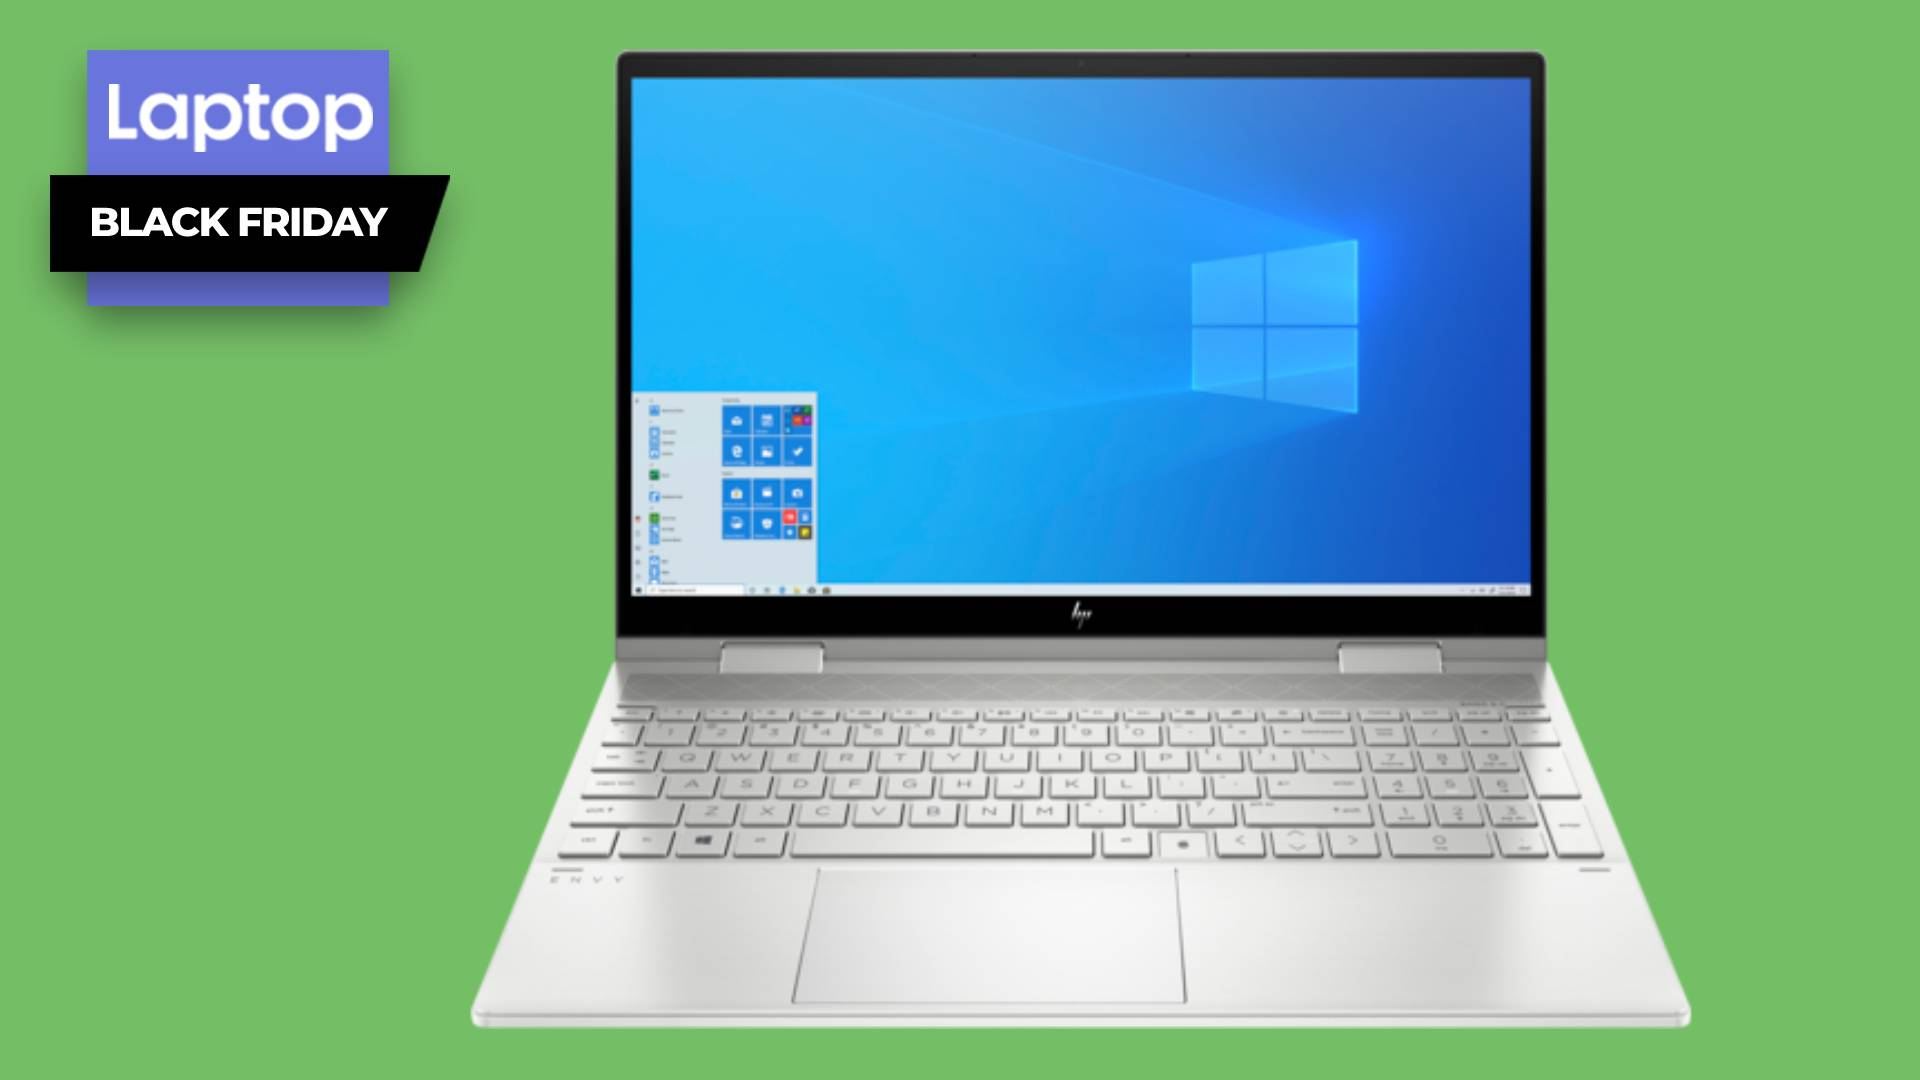 Black Friday laptop deals 2021: Early sales, discounts to expect